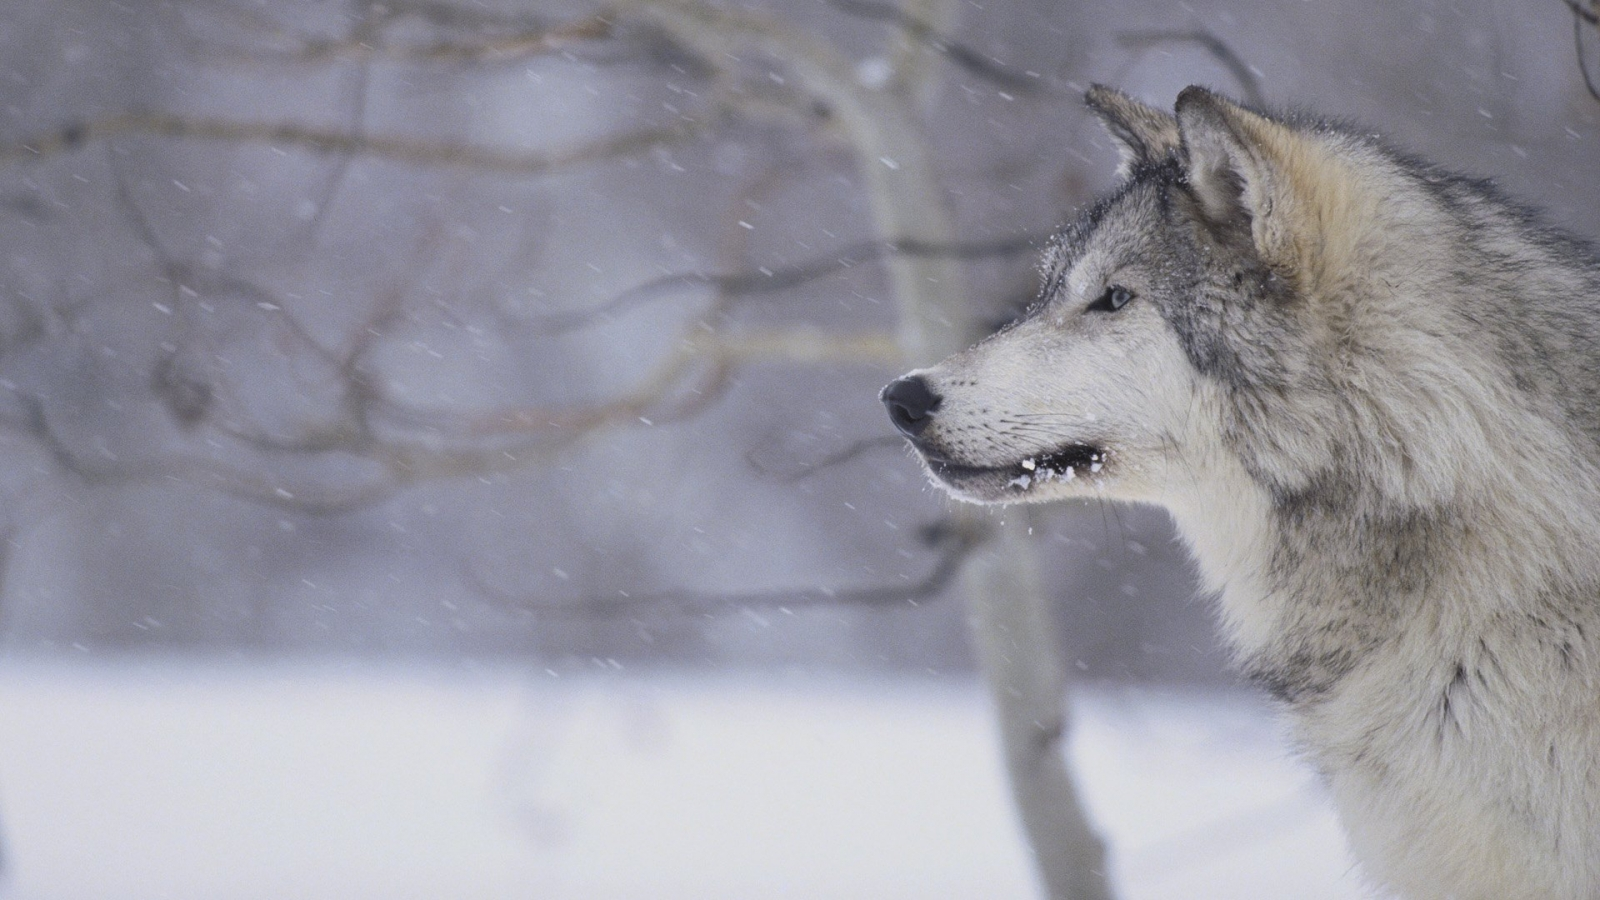 Wolf 1600x900 Wallpapers 1600x900 Wallpapers amp Pictures 1600x900